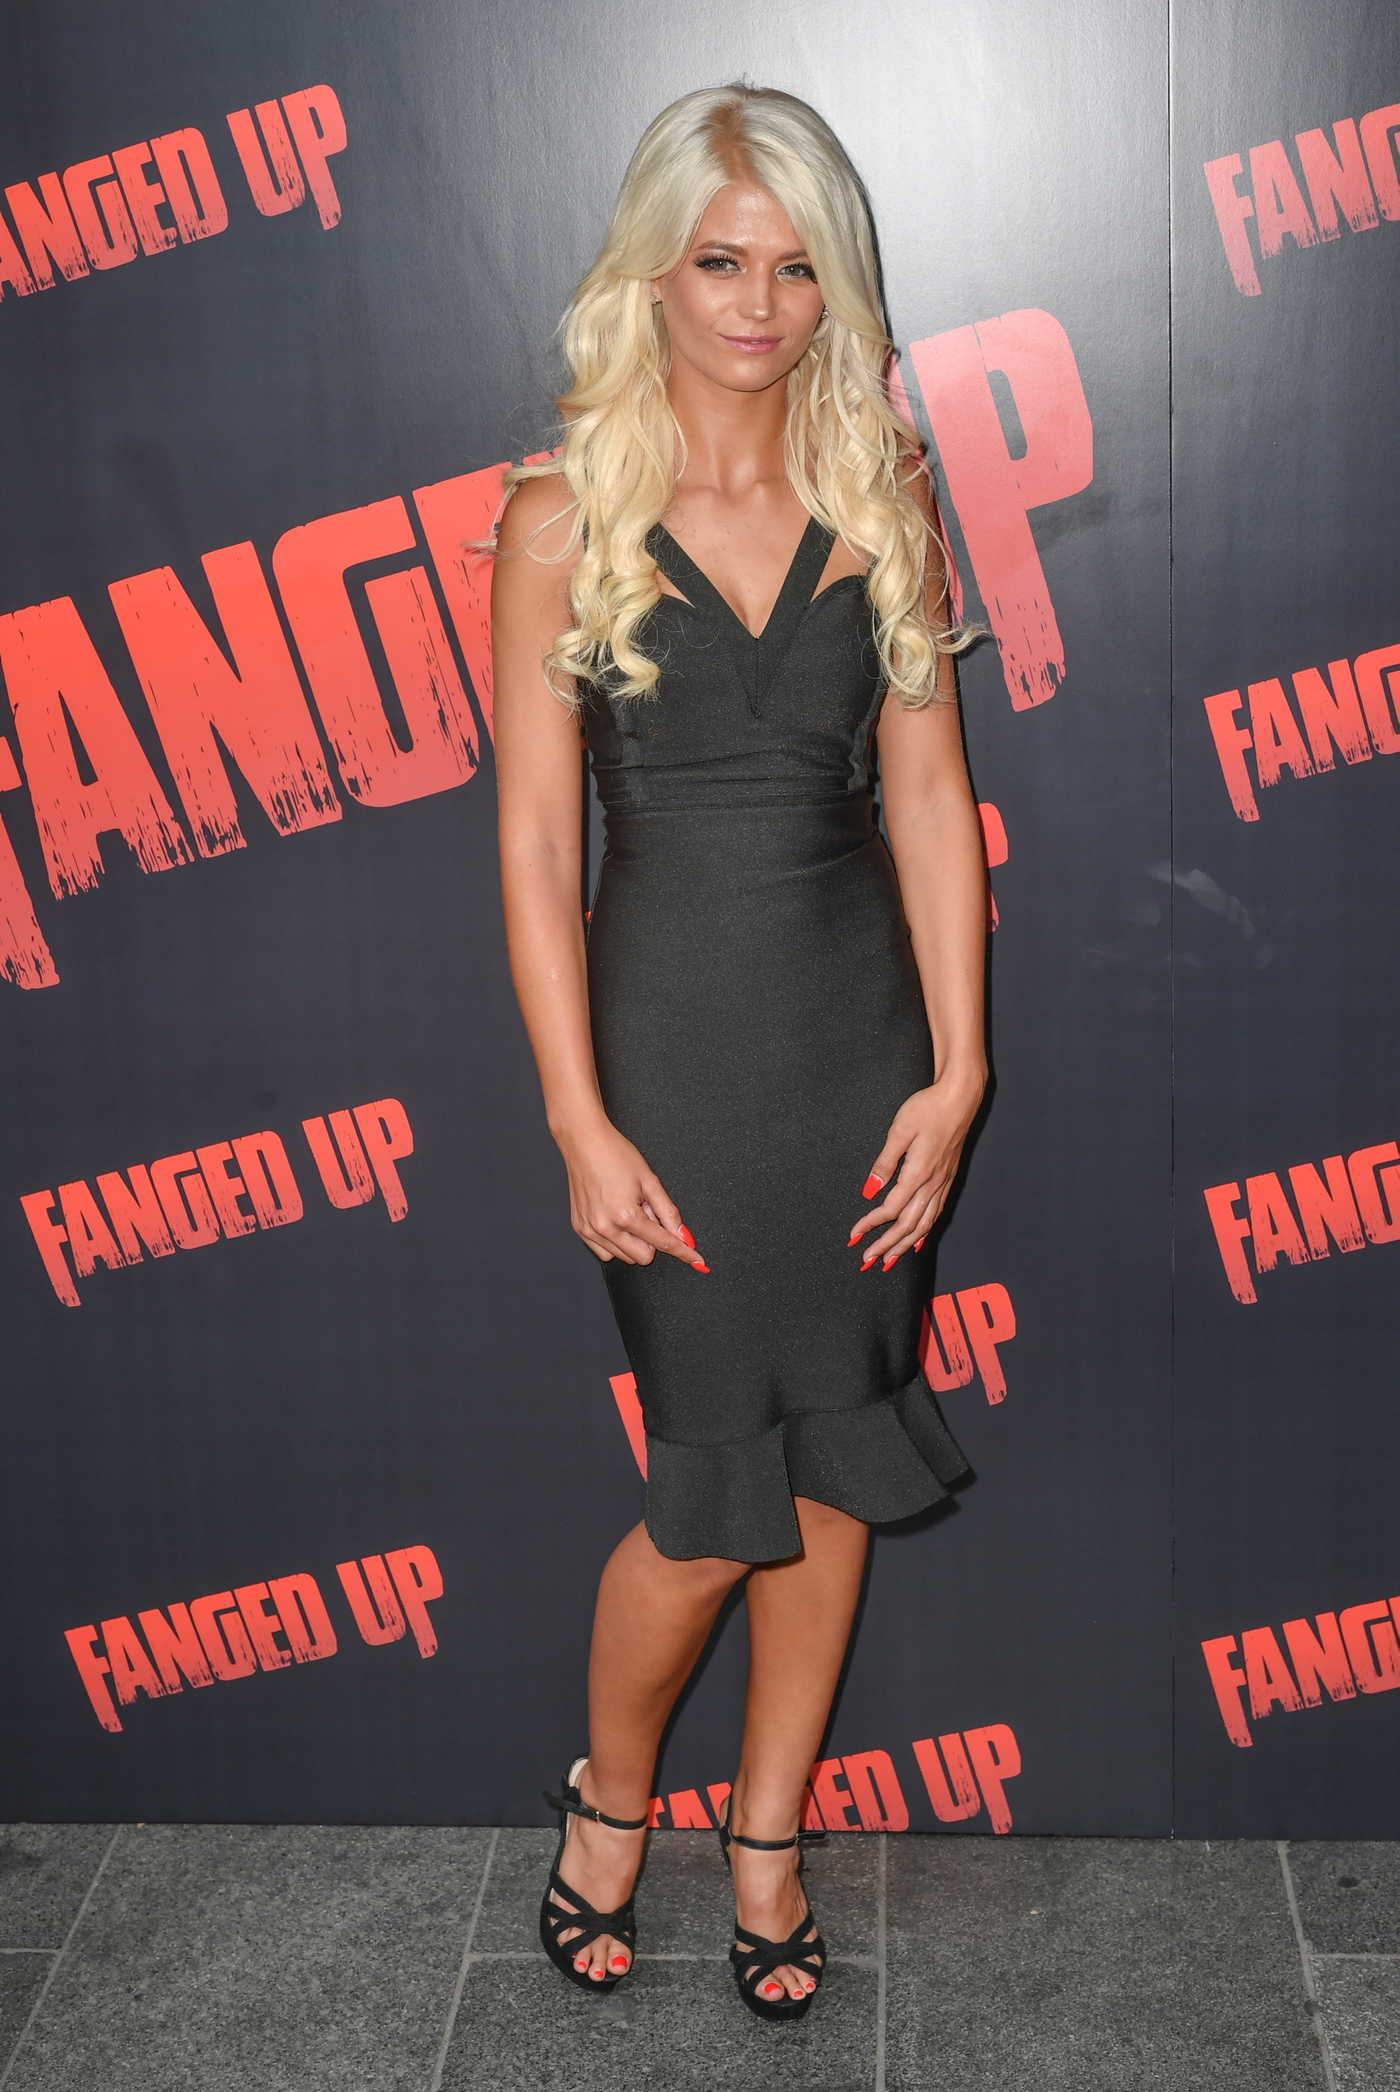 Danielle Harold at Fanged Up Premiere at Prince Charles Cinema in London 07/25/2018